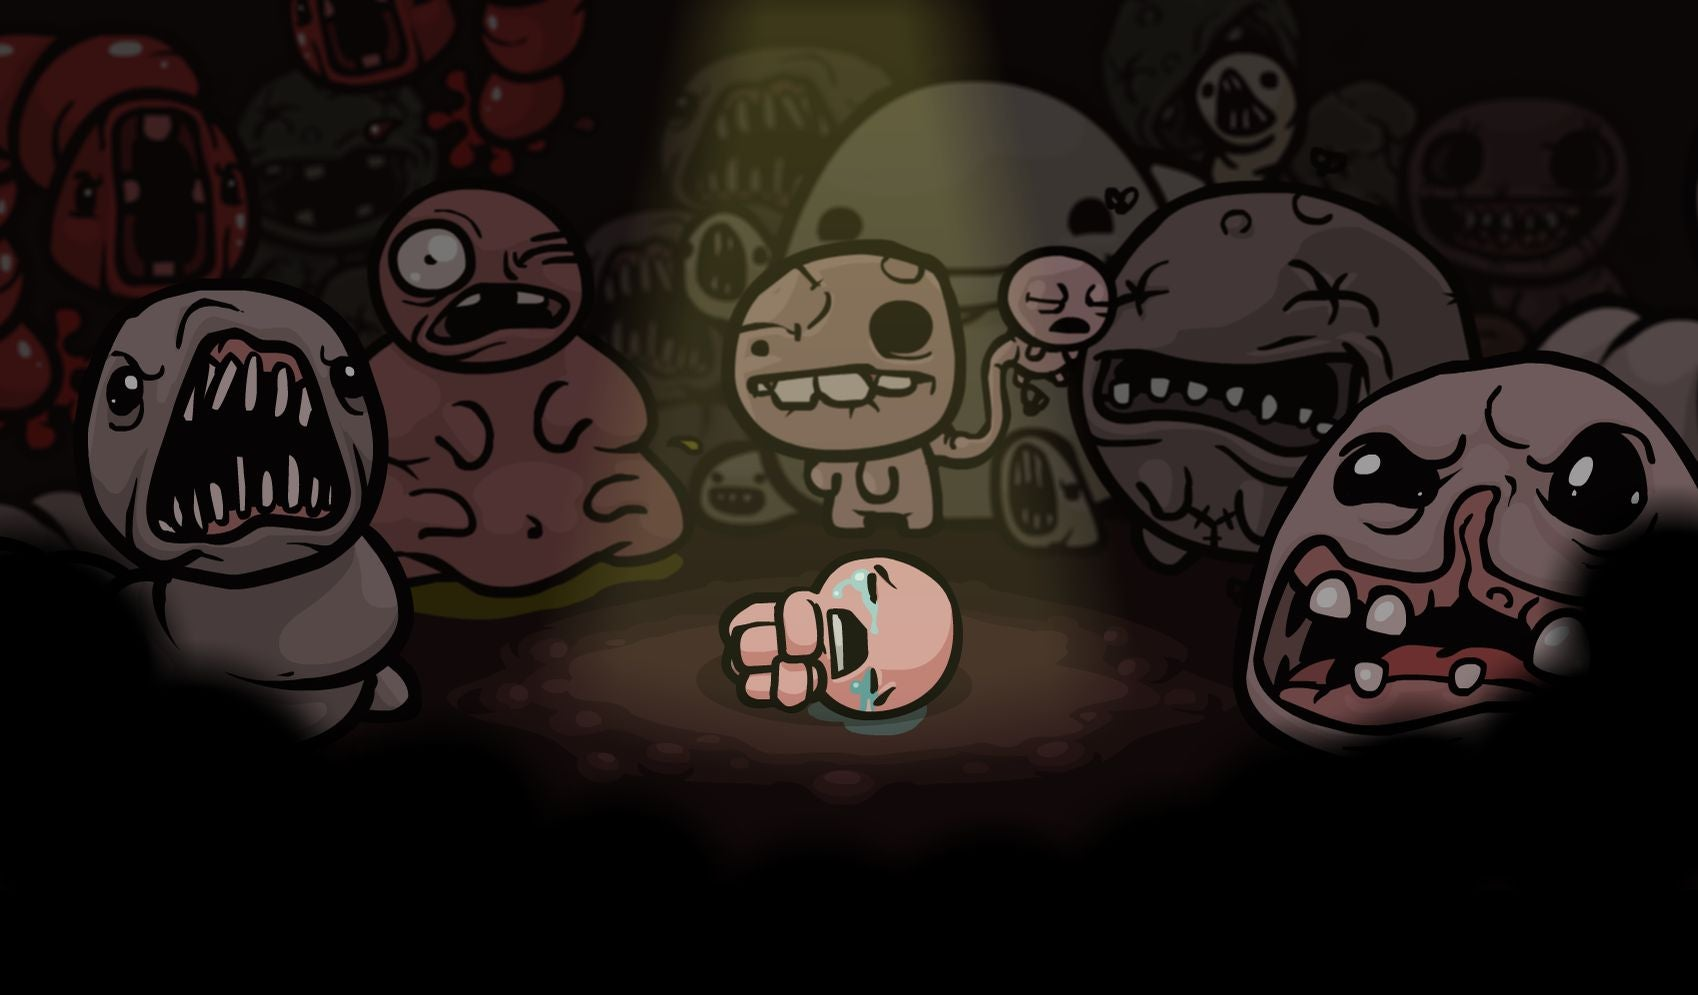 Binding Of Isaac DLC Adds More Everything, Including Co-Op Babies